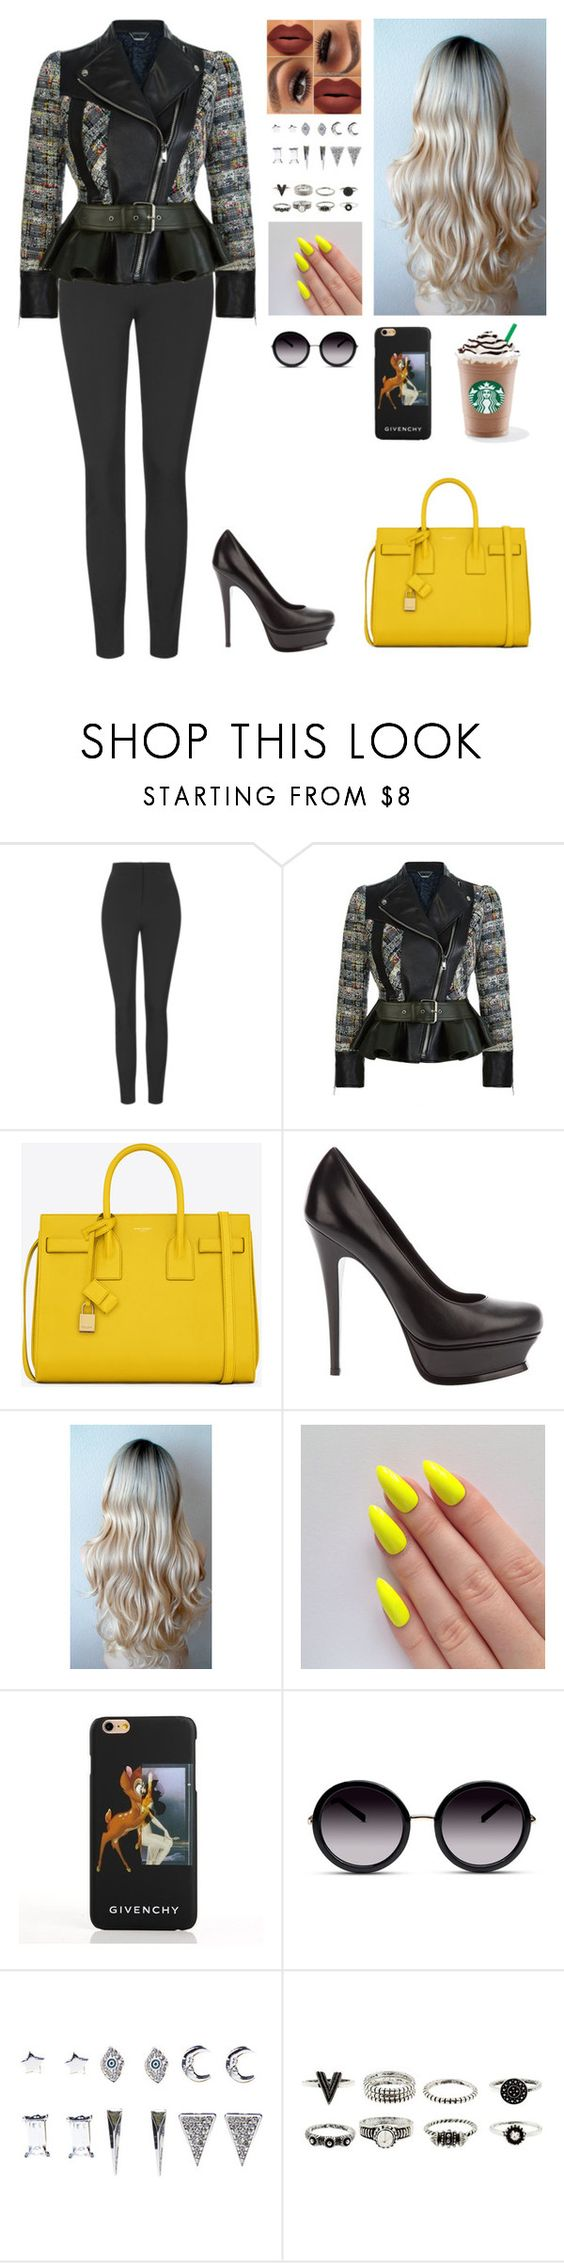 """Untitled #355"" by myrnalankreijer ❤ liked on Polyvore featuring Unique, Alexander McQueen, Yves Saint Laurent, Givenchy, GlassesUSA and Wet Seal"